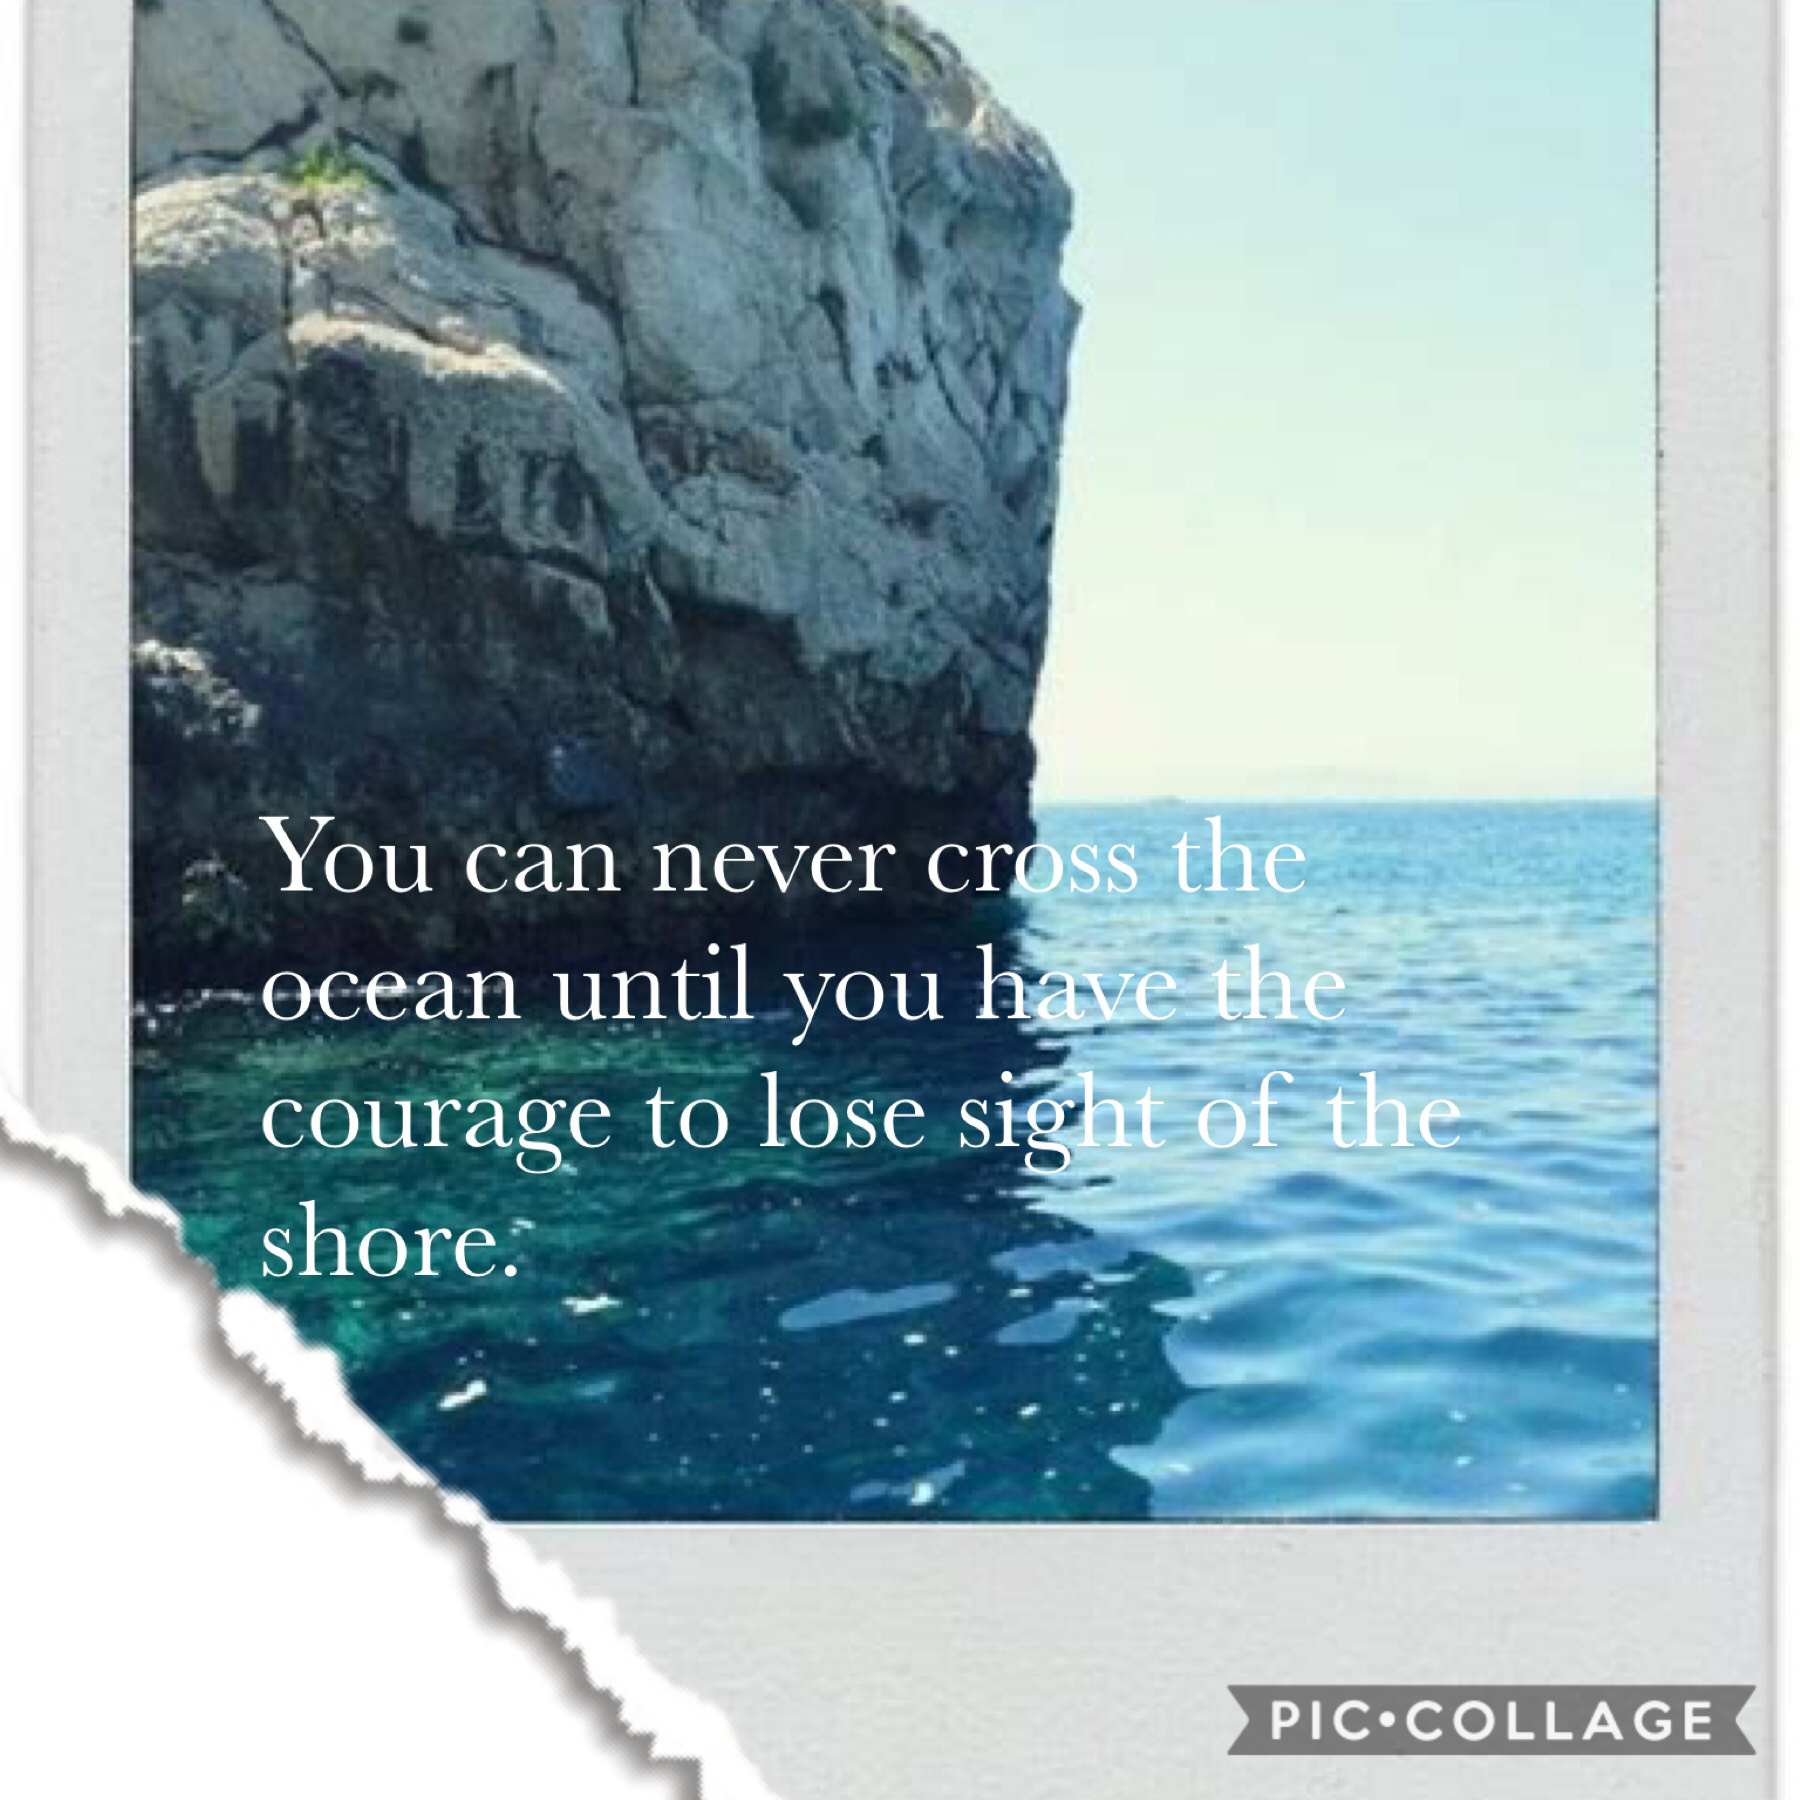 You can never cross the ocean until you have the courage to lose sight of the shore🌊